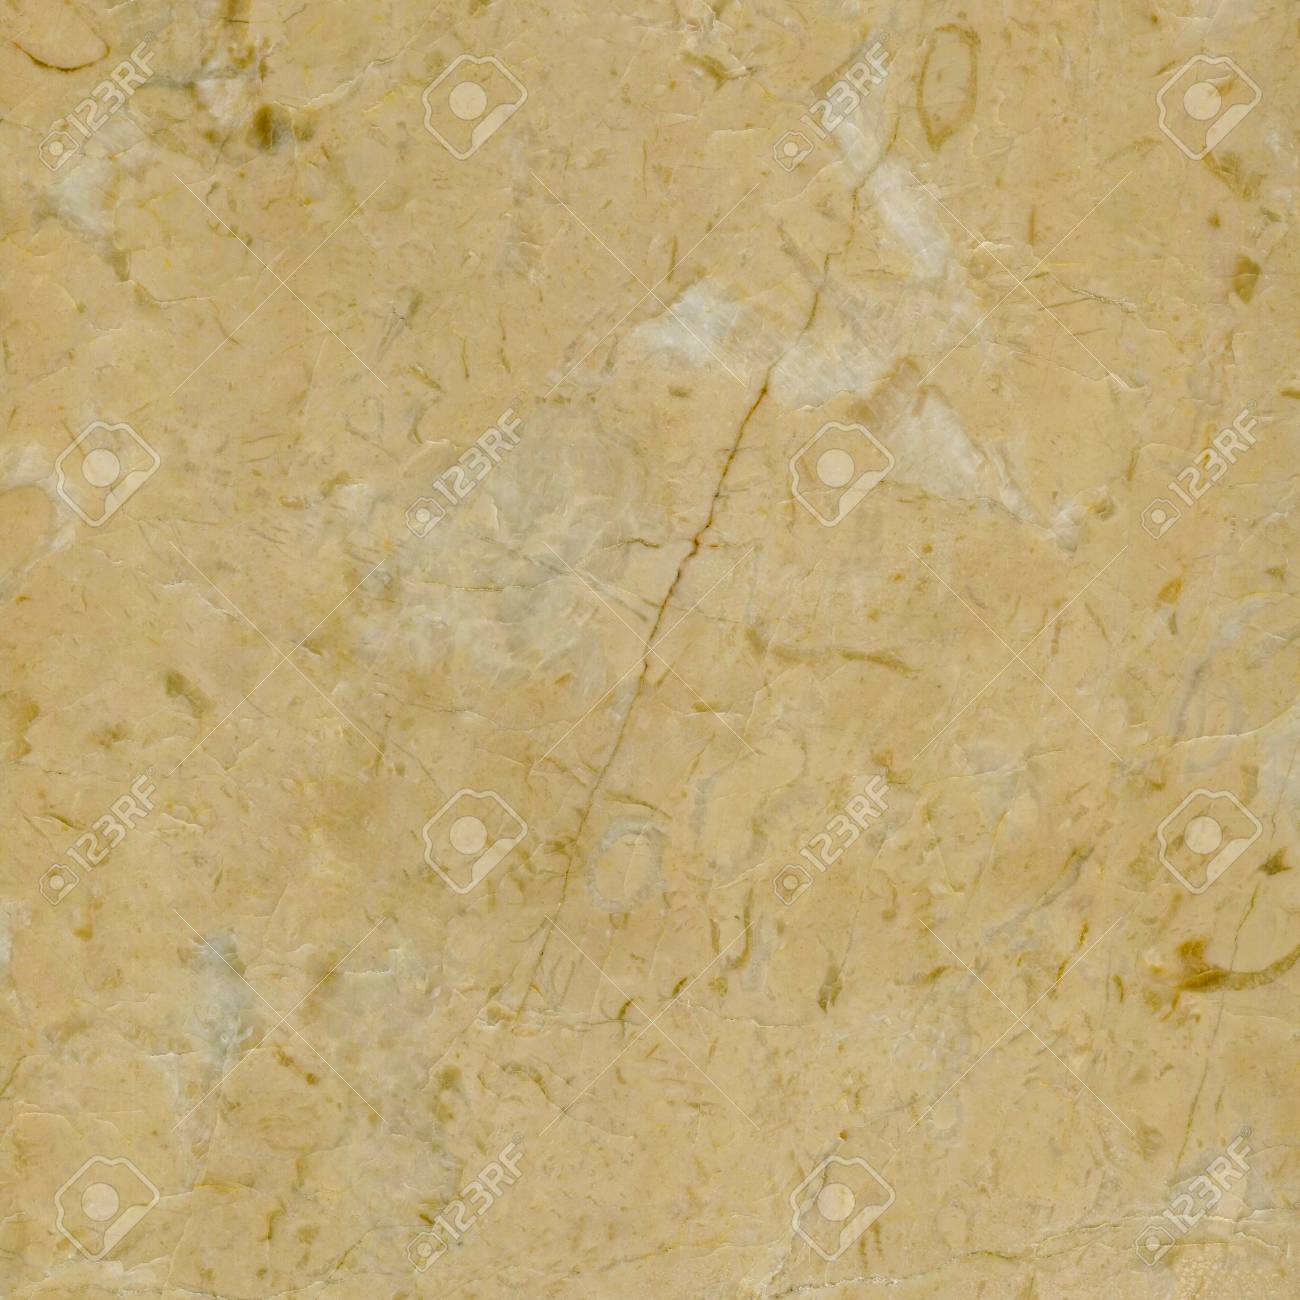 Most Inspiring Wallpaper High Quality Marble - 78047954-marble-texture-marble-background-high-quality-marble  Graphic_74169.jpg